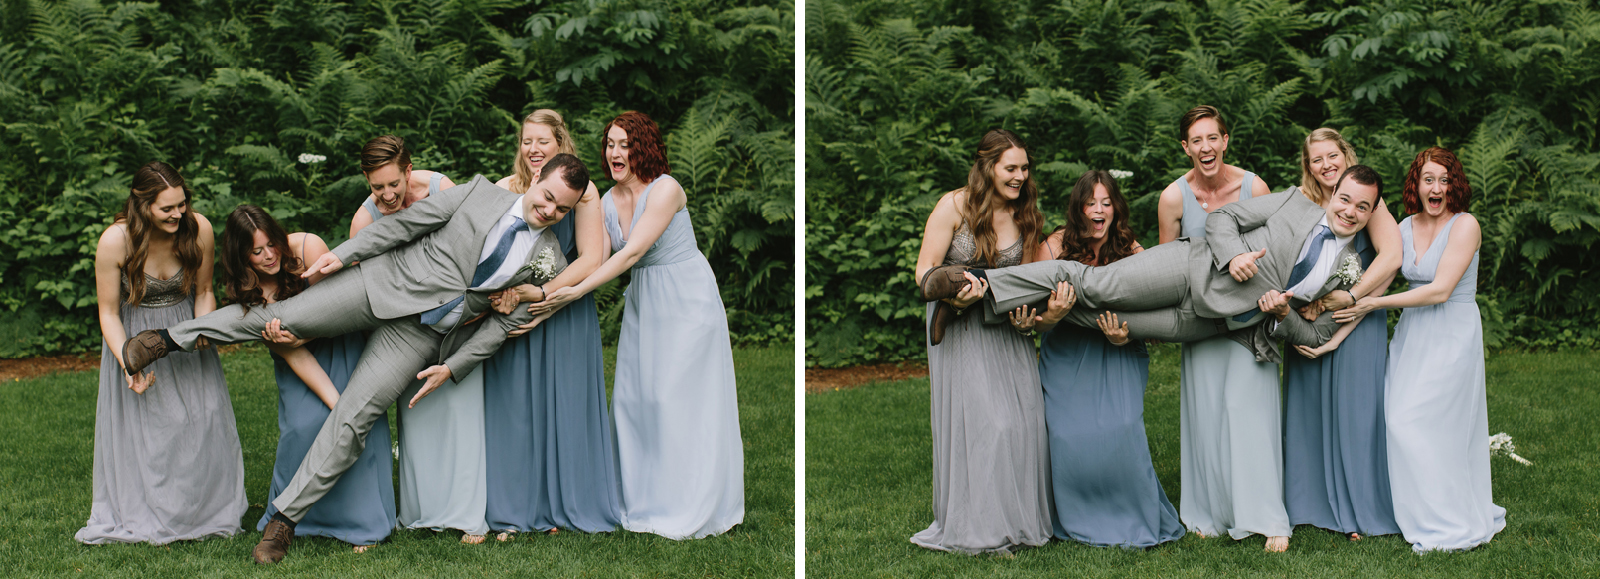 The bridesmaids hold the groom at Bridal Veil Lakes in Oregon